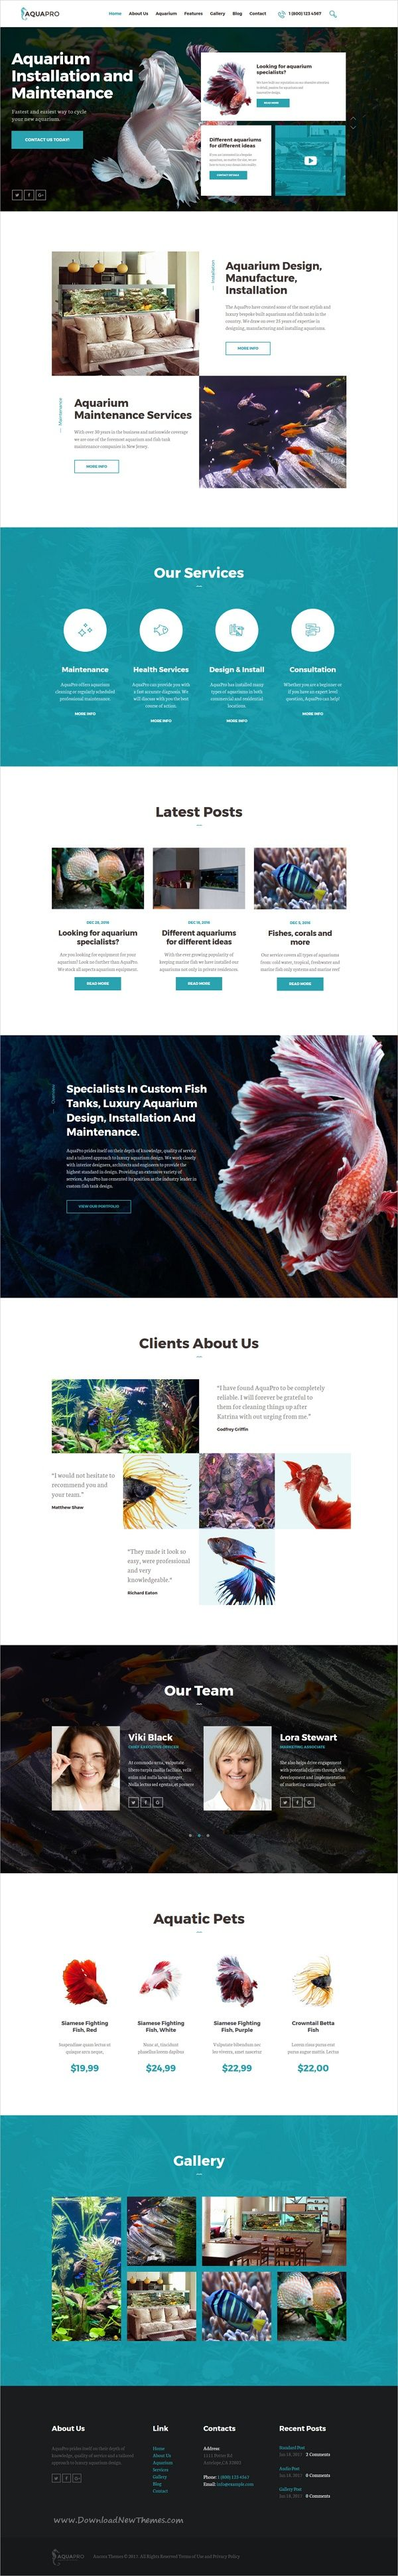 AquaPro is modern and functional design responsive #WordPress theme for #Aquarium services and business online store #eCommerce website download now➩ https://themeforest.net/item/aquapro-aquarium-services-online-store/19811882?ref=Datasata